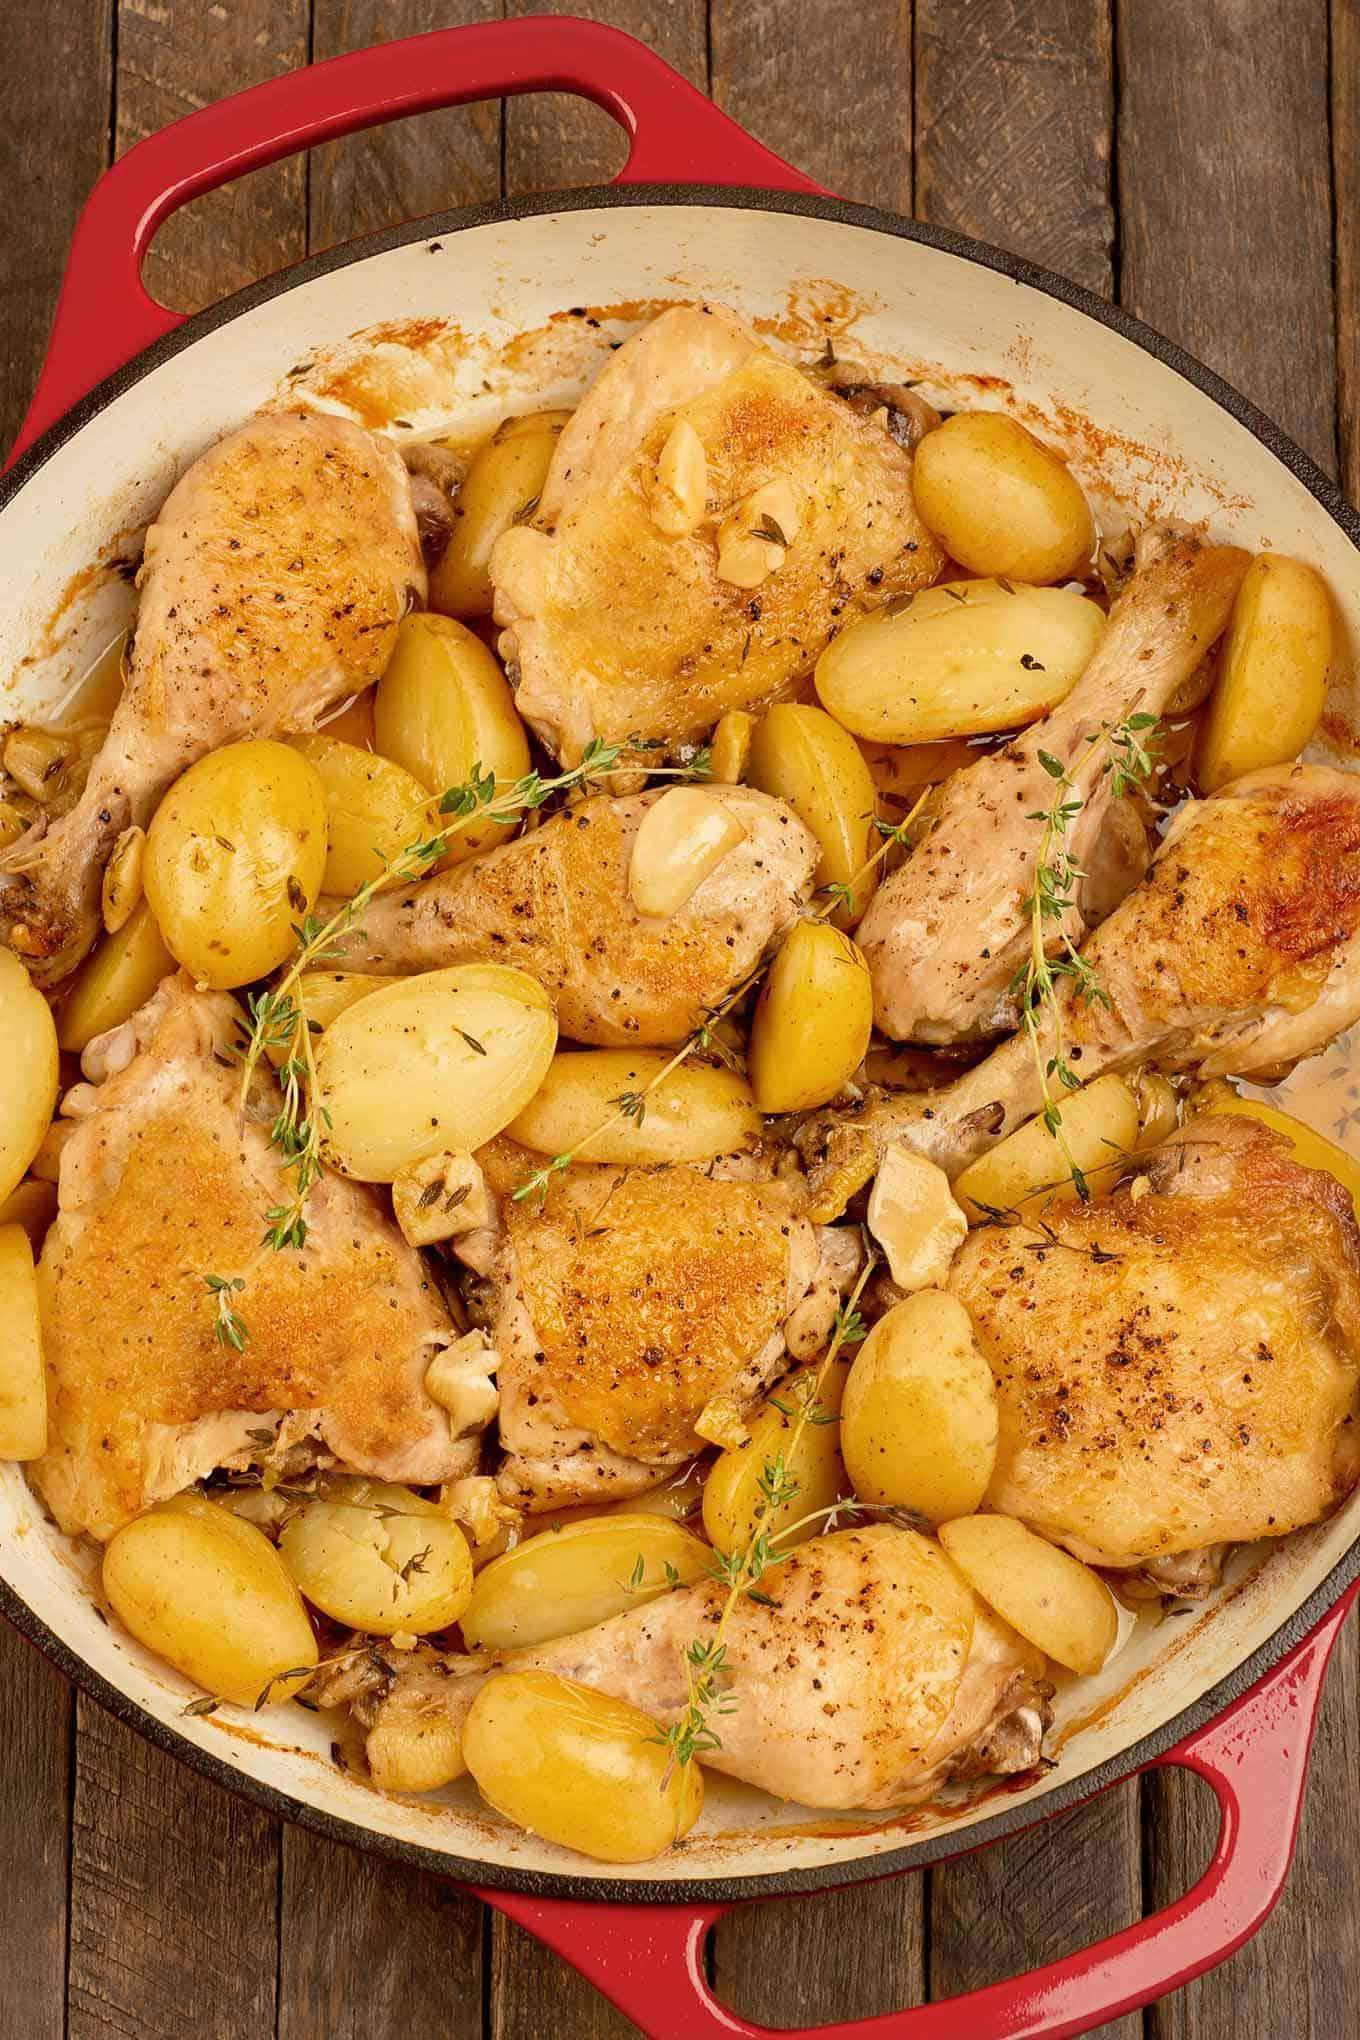 A cast iron skillet filled with roasted chicken thighs and drumsticks, potatoes, garlic, and sprigs of fresh thyme.